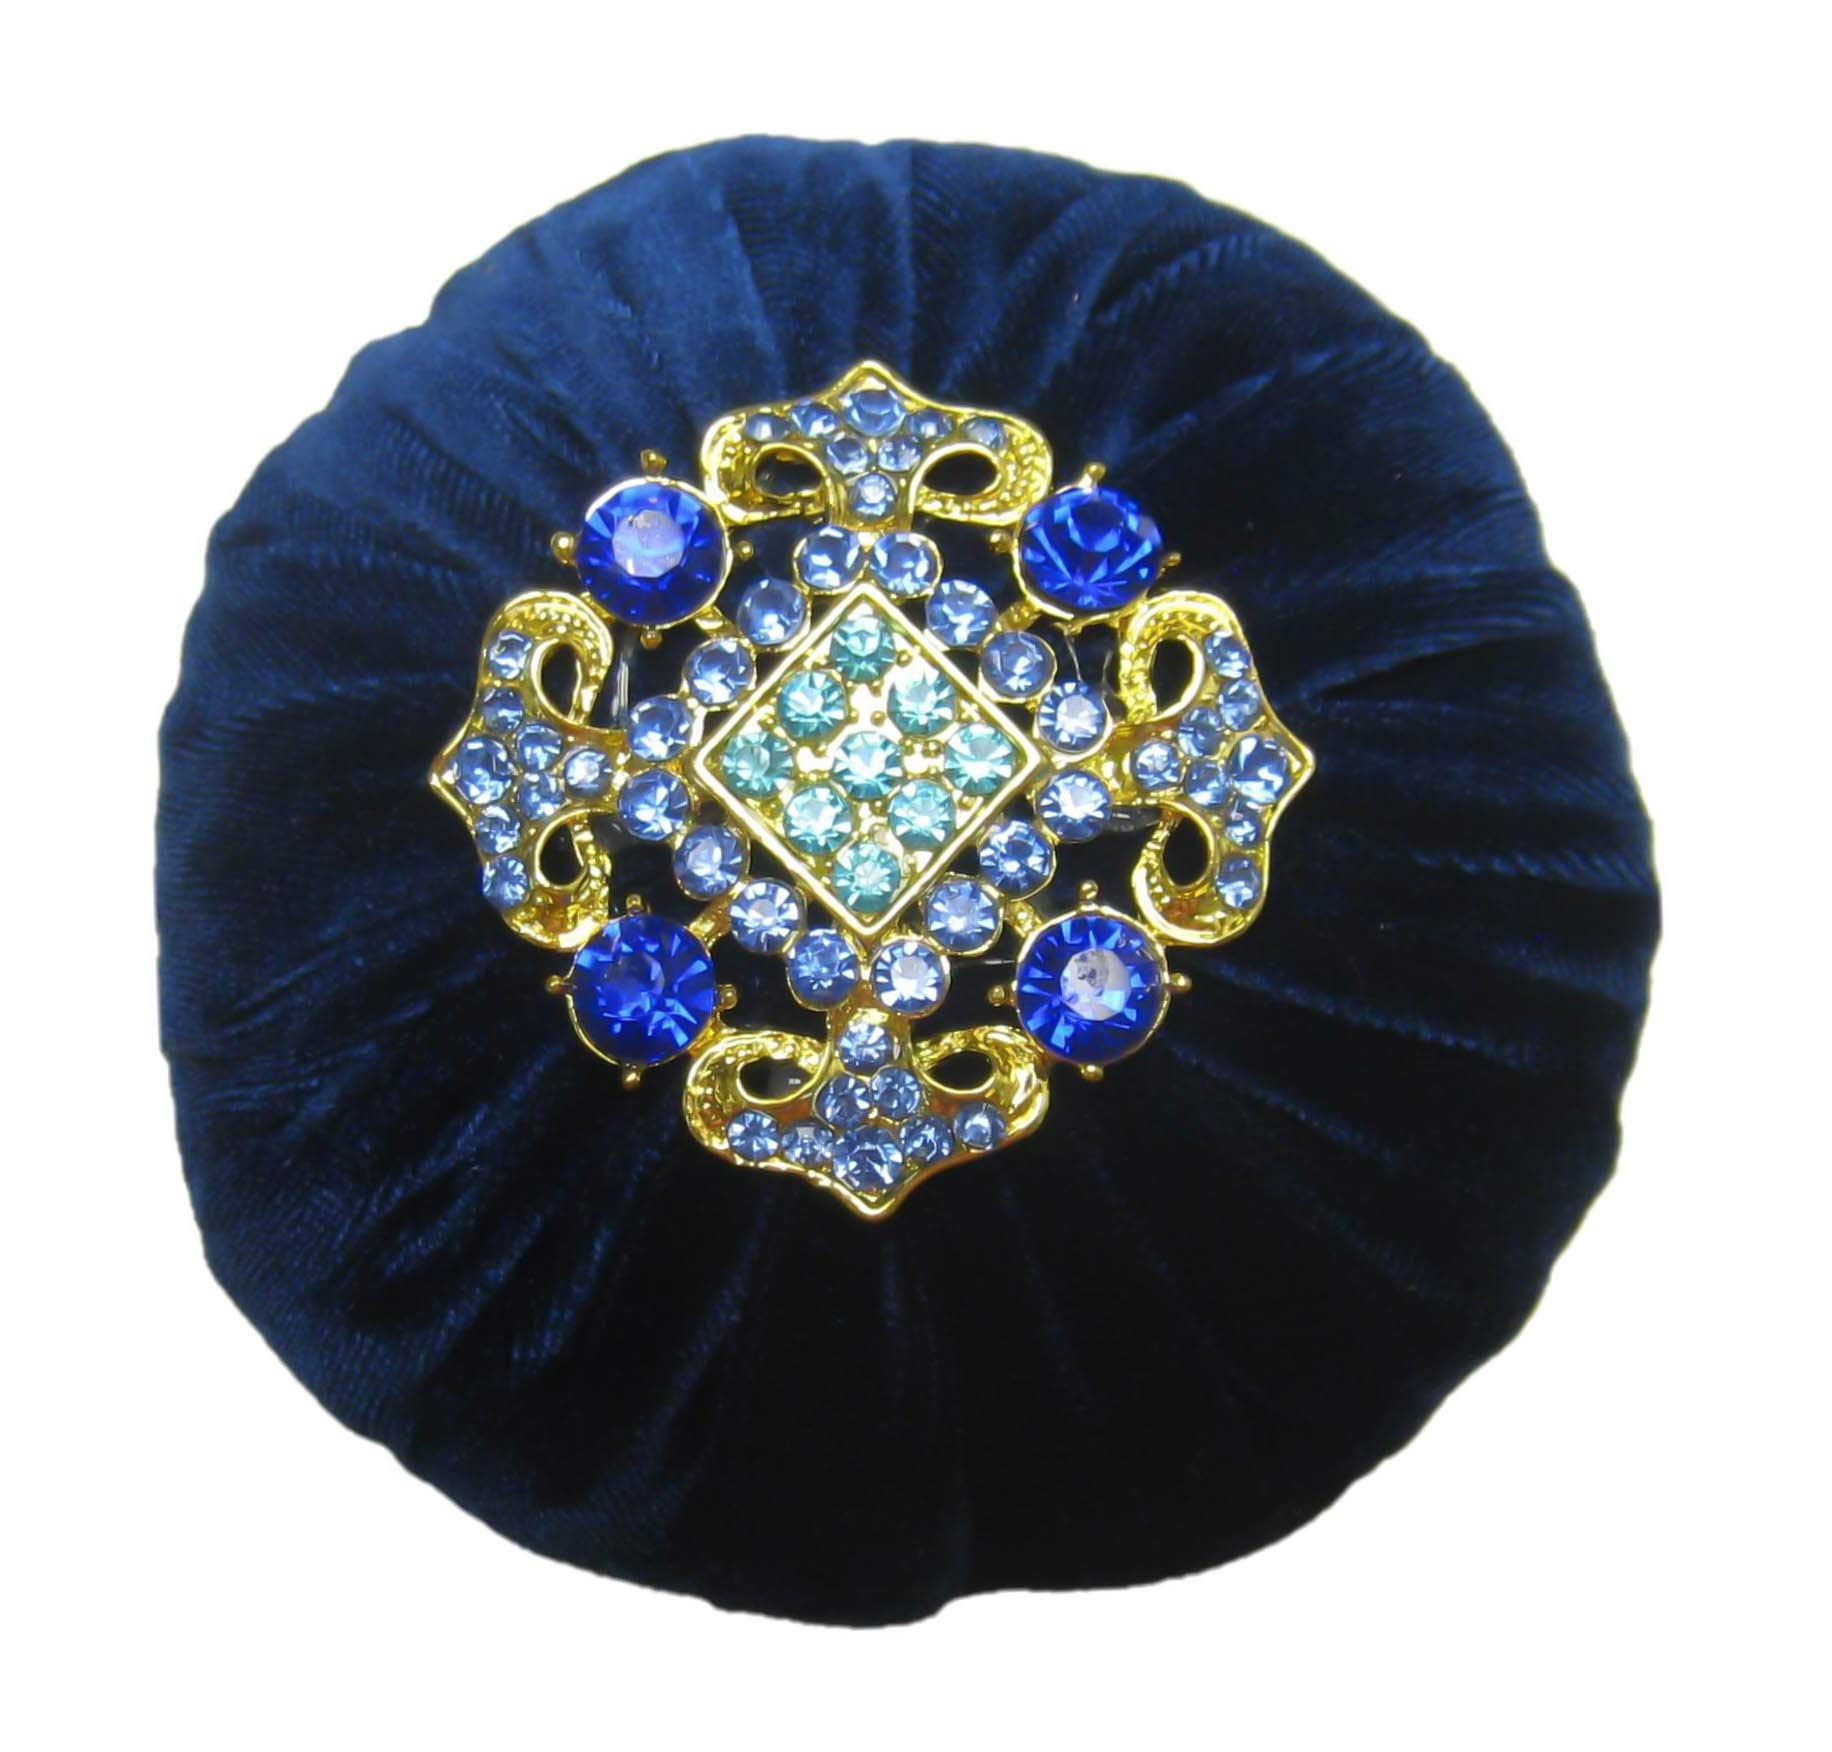 Nakpunar 4'' Navy Blue Velvet Pin Cushion for Sewing - Decorated Rhinestone and Filled with Abrasive Emery Sand by Nakpunar